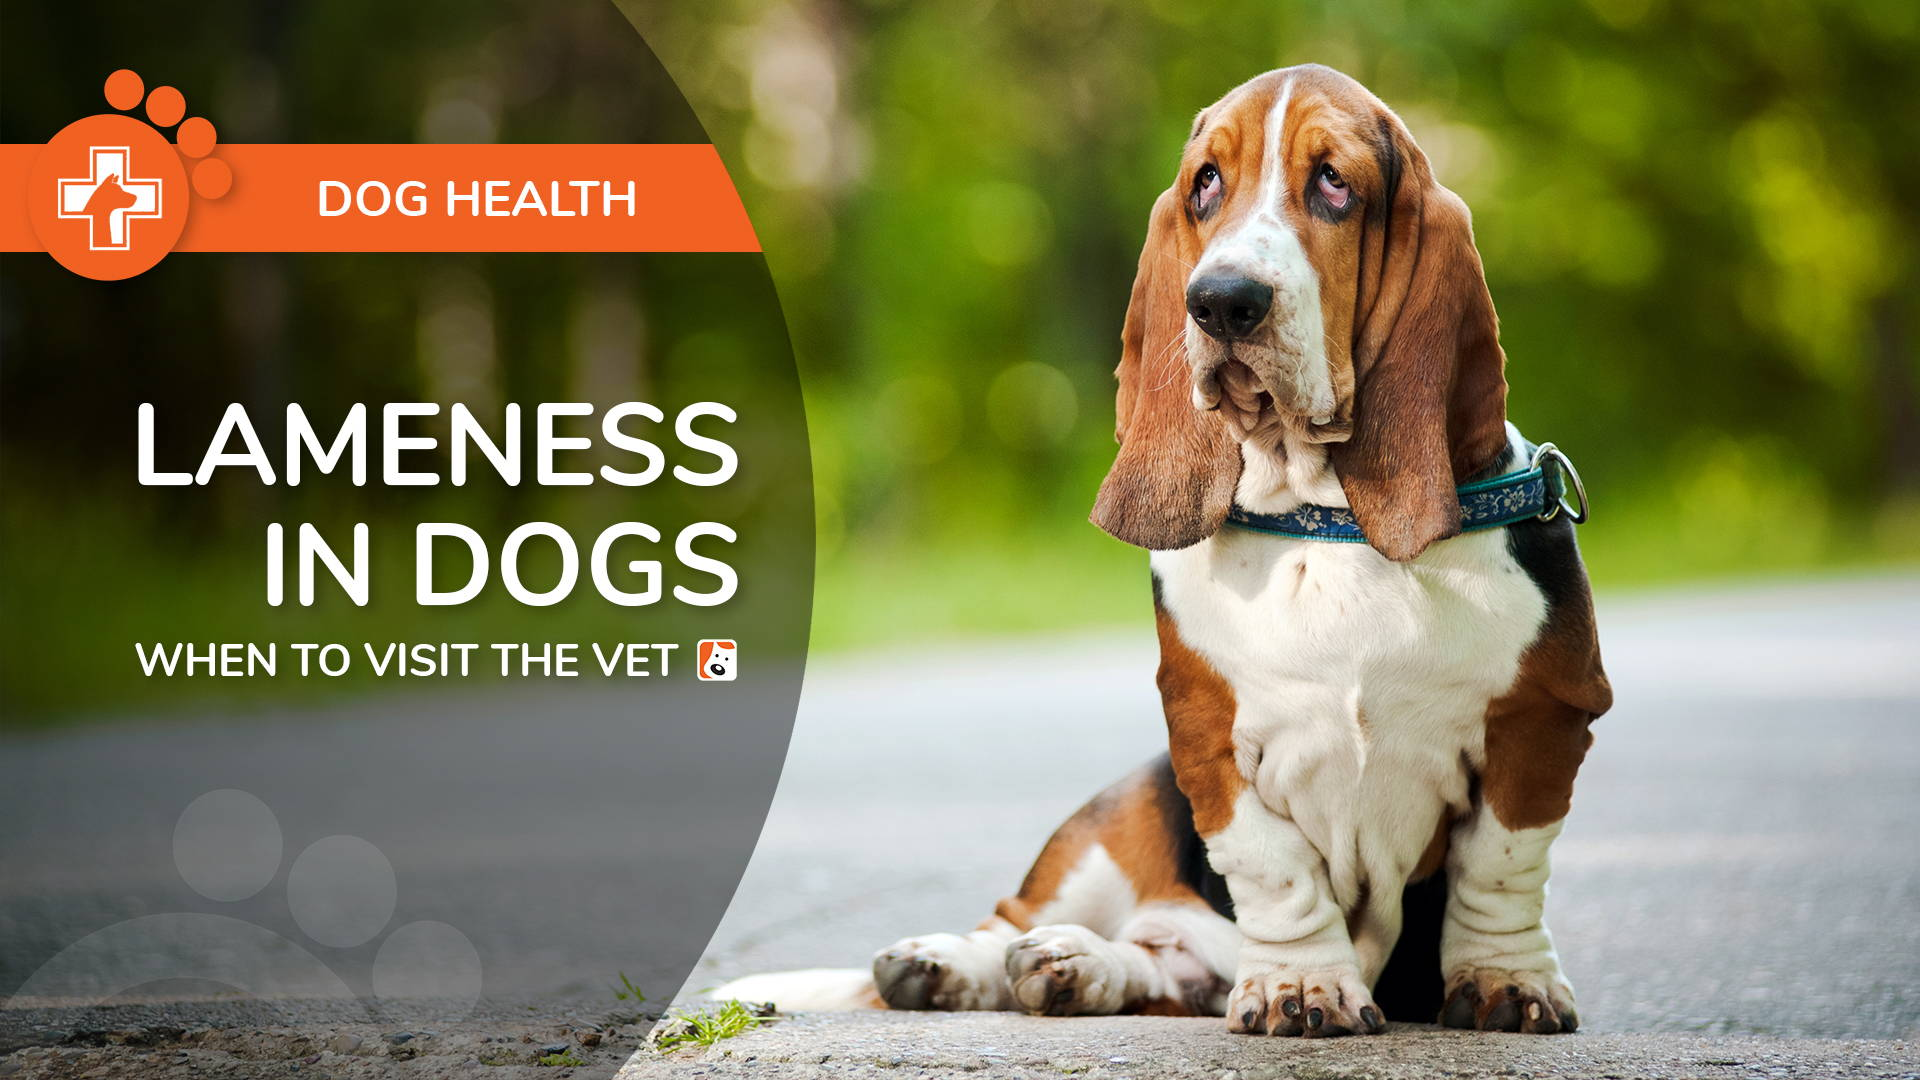 Lameness in Dogs: Causes and When To Visit the Vet